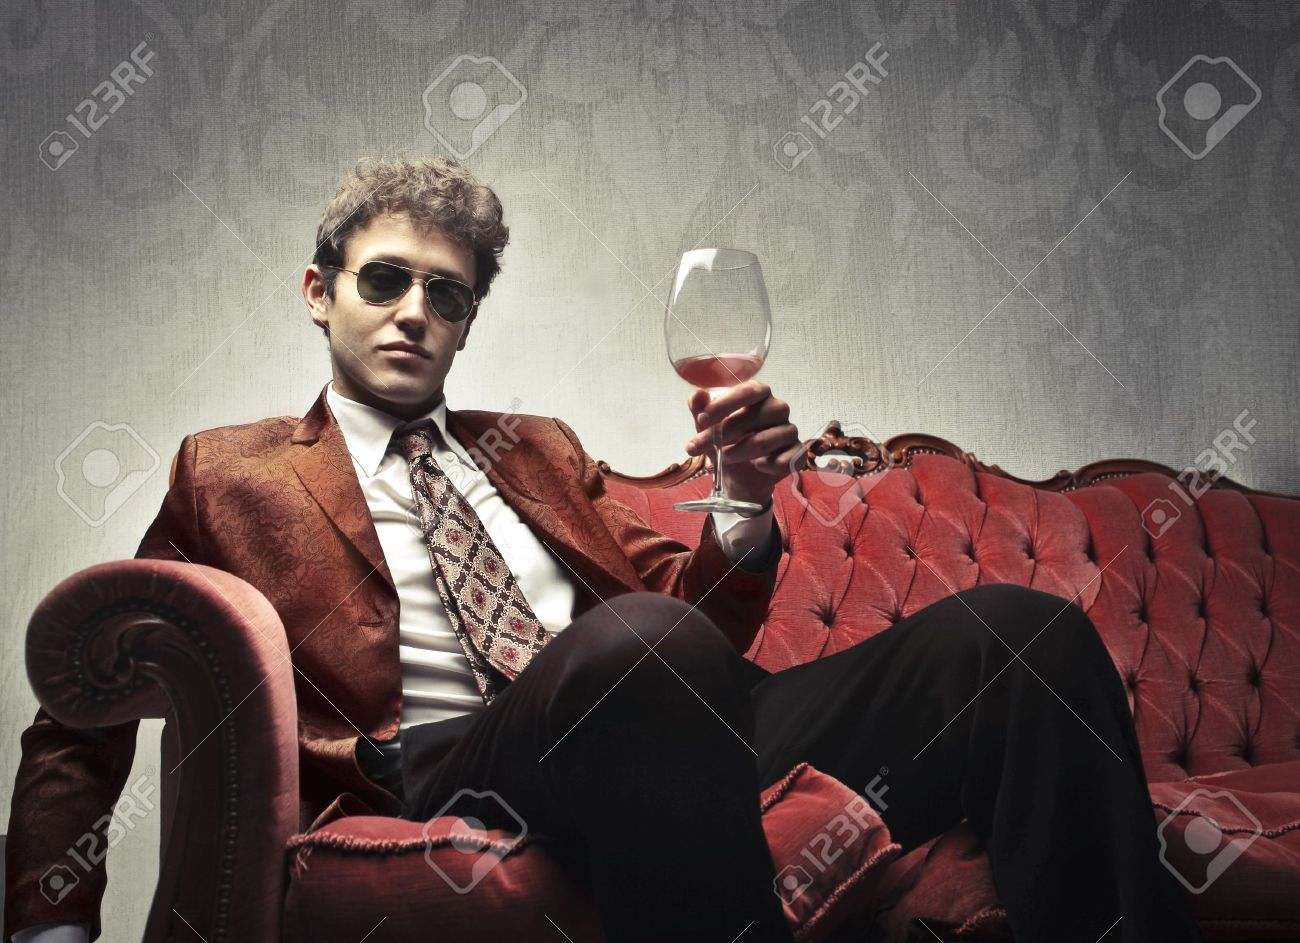 Elegant man sitting on a velvet sofa and holding a glass of wine Stock Photo - 10416614